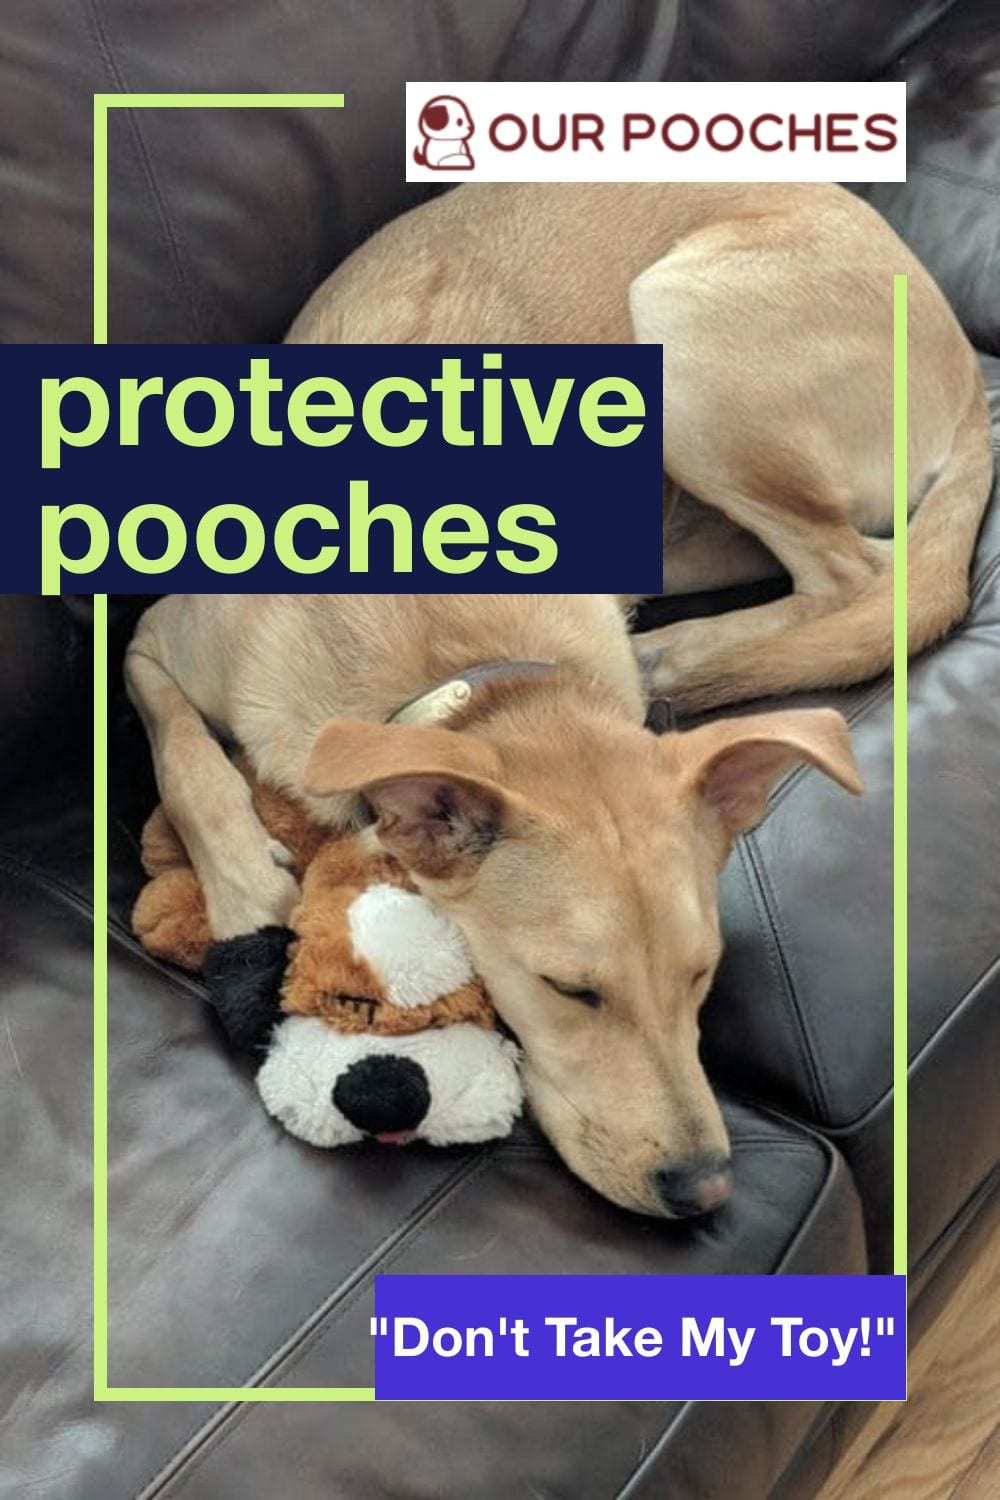 Protective pooches with toys